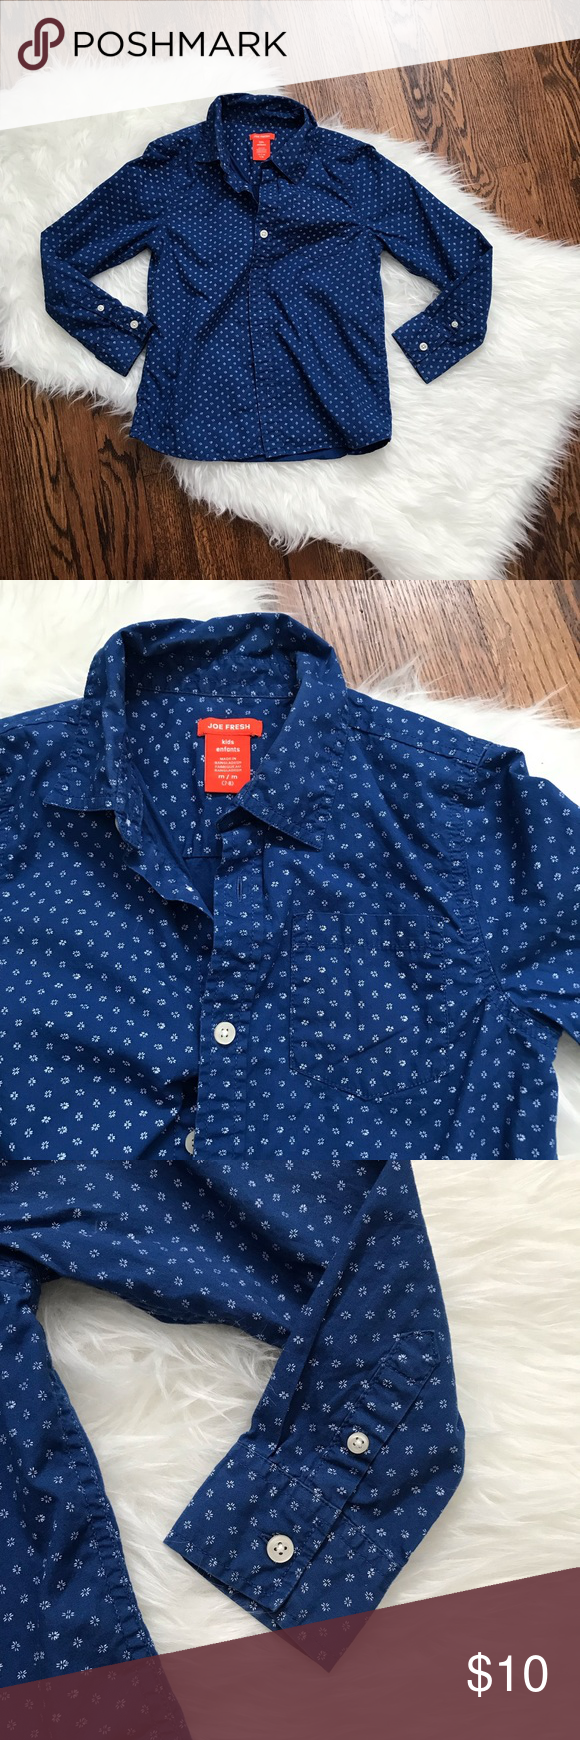 5f2f996af Kids button down blue shirt size 7/8 boys Cute brighter than navy blue  button down shirt with a 'floral' pattern Pattern is little white dots In  clusters to ...